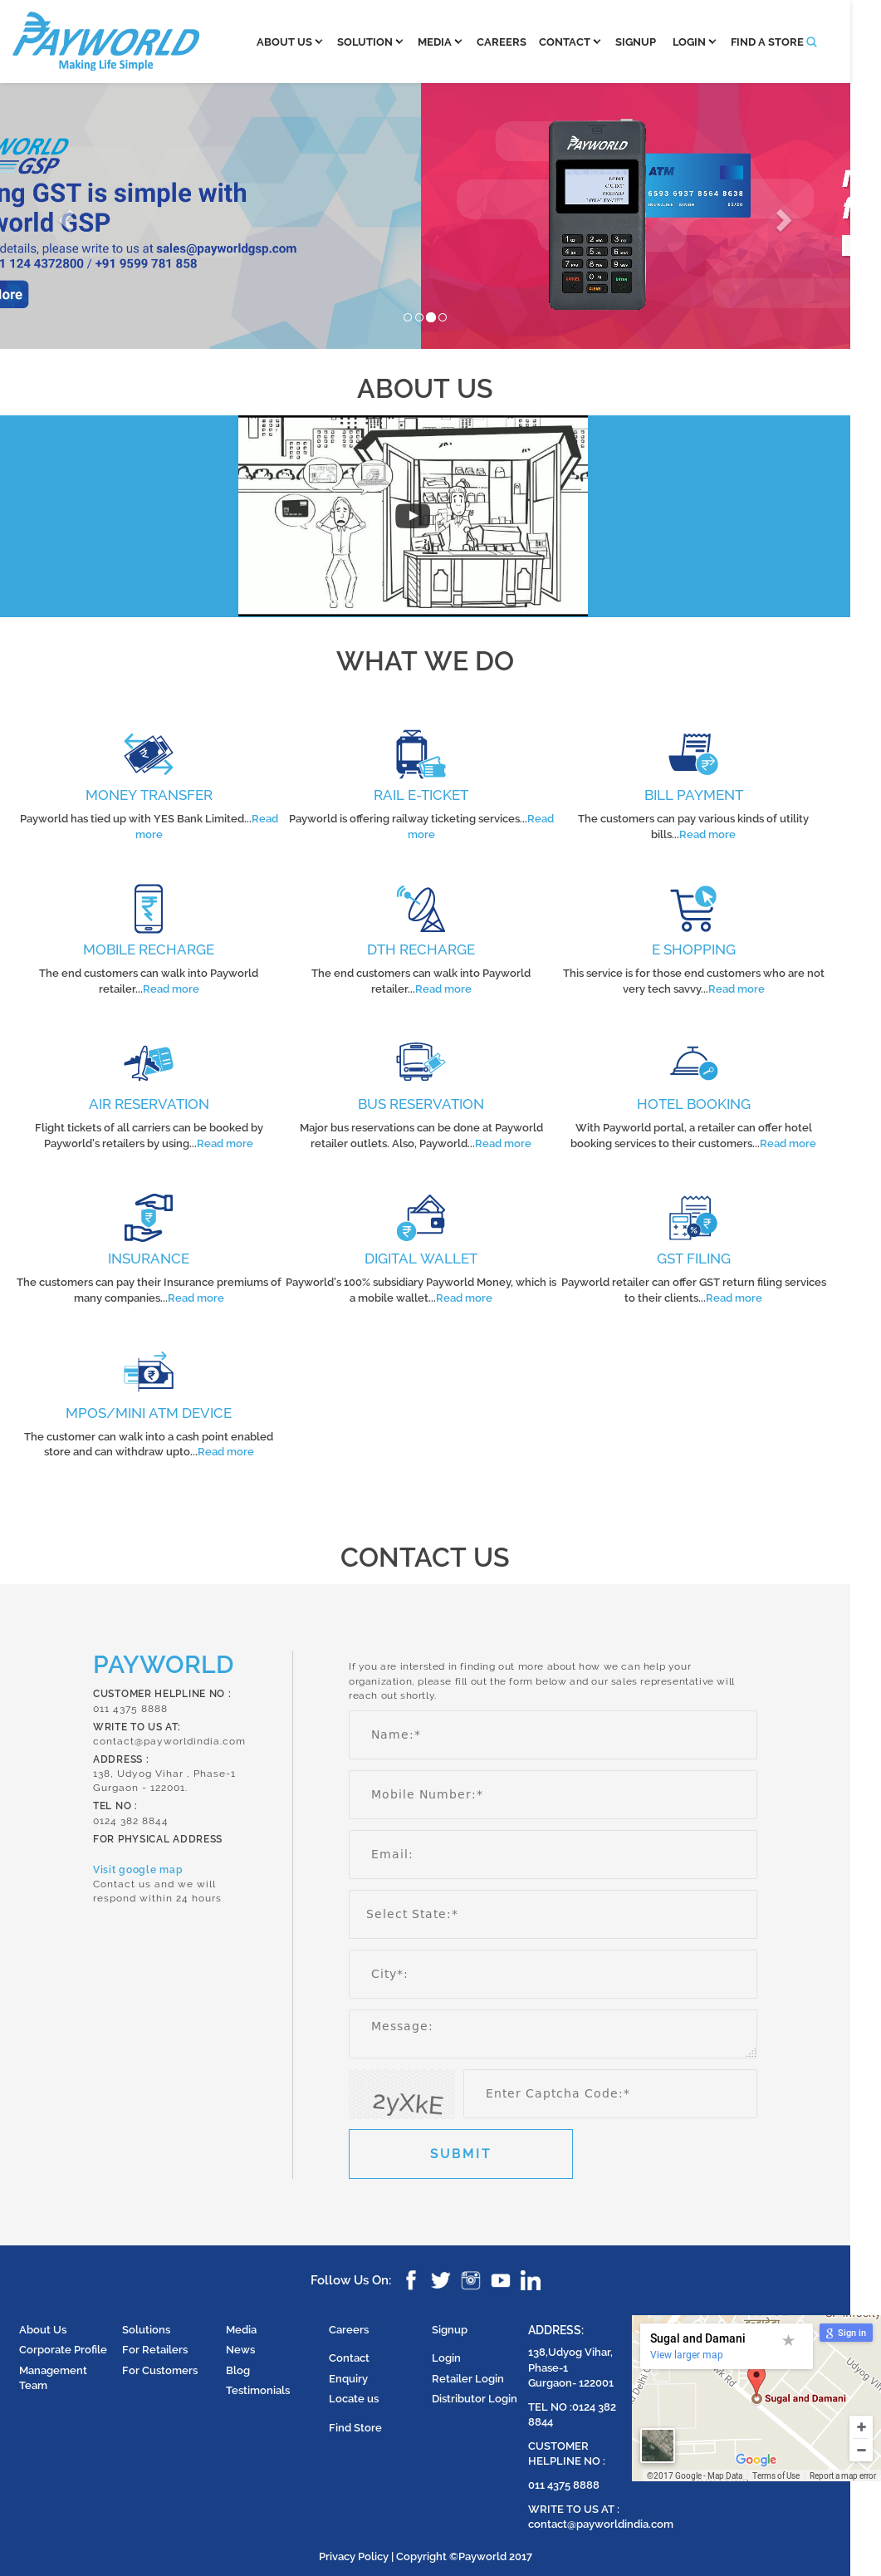 Payworld Competitors, Revenue and Employees - Owler Company Profile